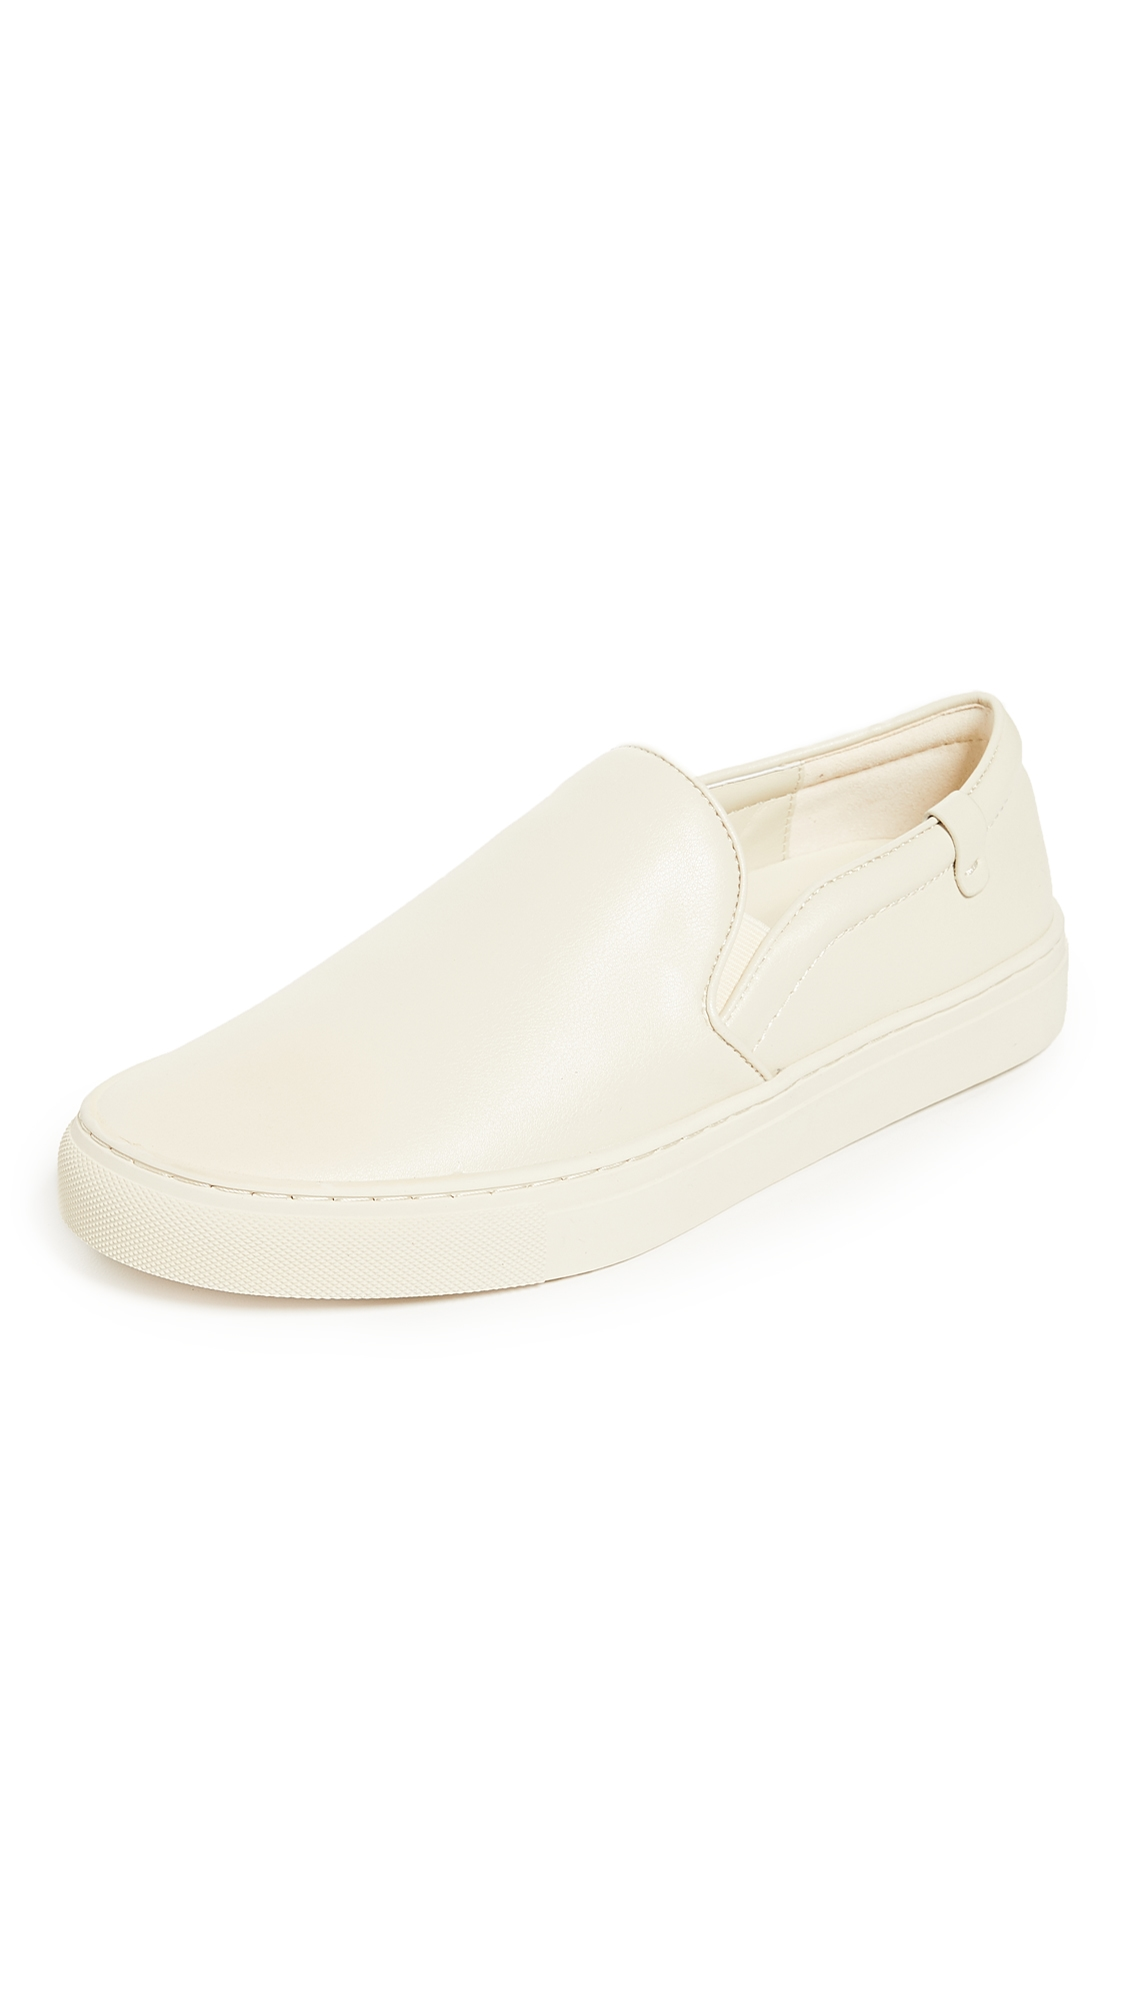 HOUSE OF FUTURE ORIGINAL SLIP ON SNEAKERS